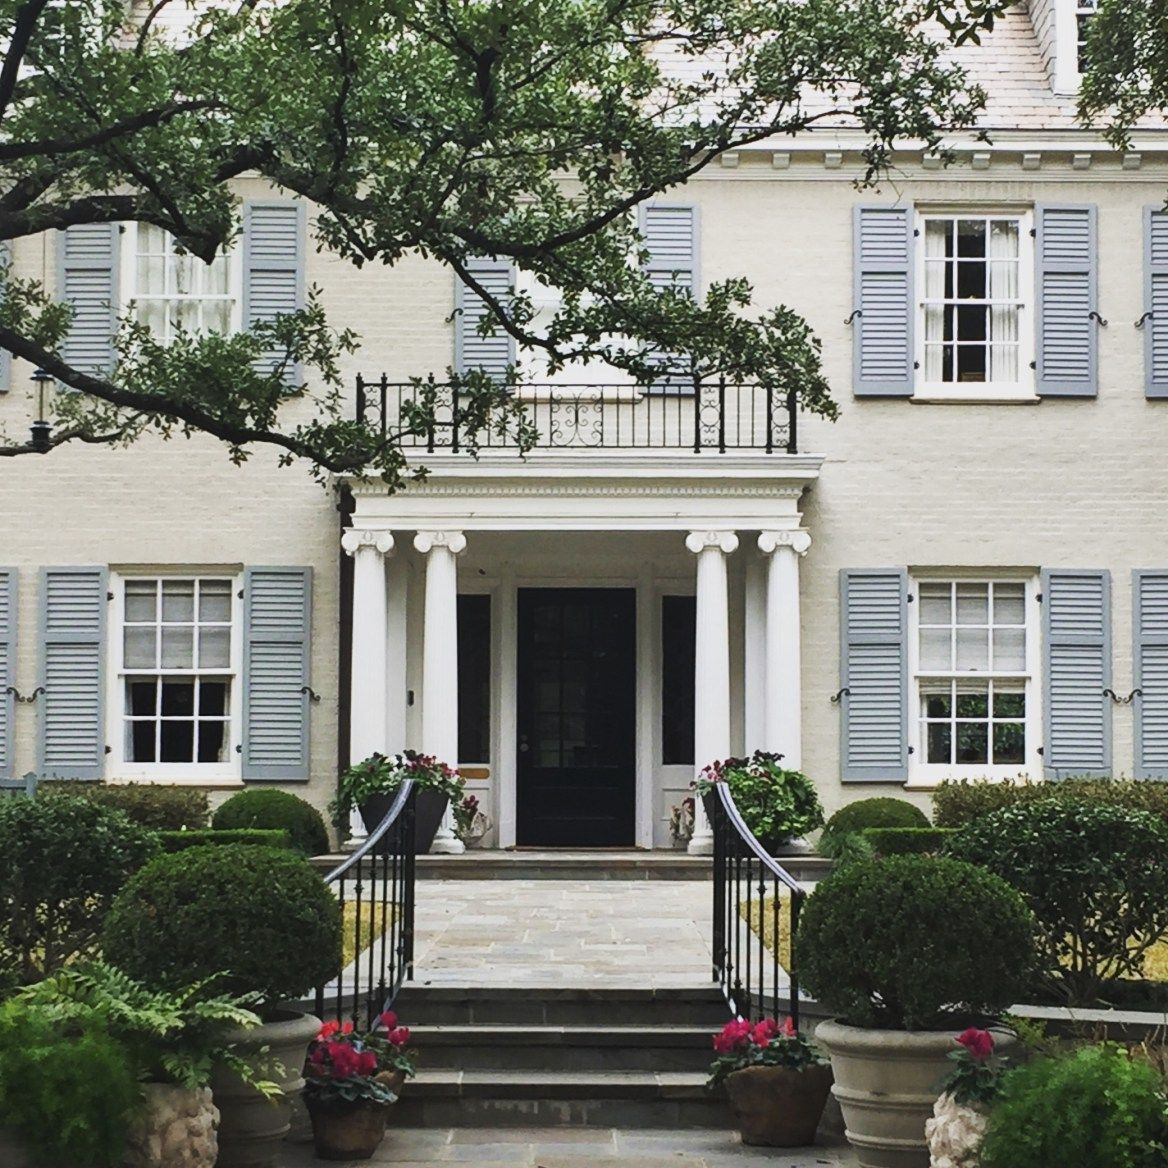 Window decorative shutters  dallas home by christina dandar for the potted boxwood  shutters